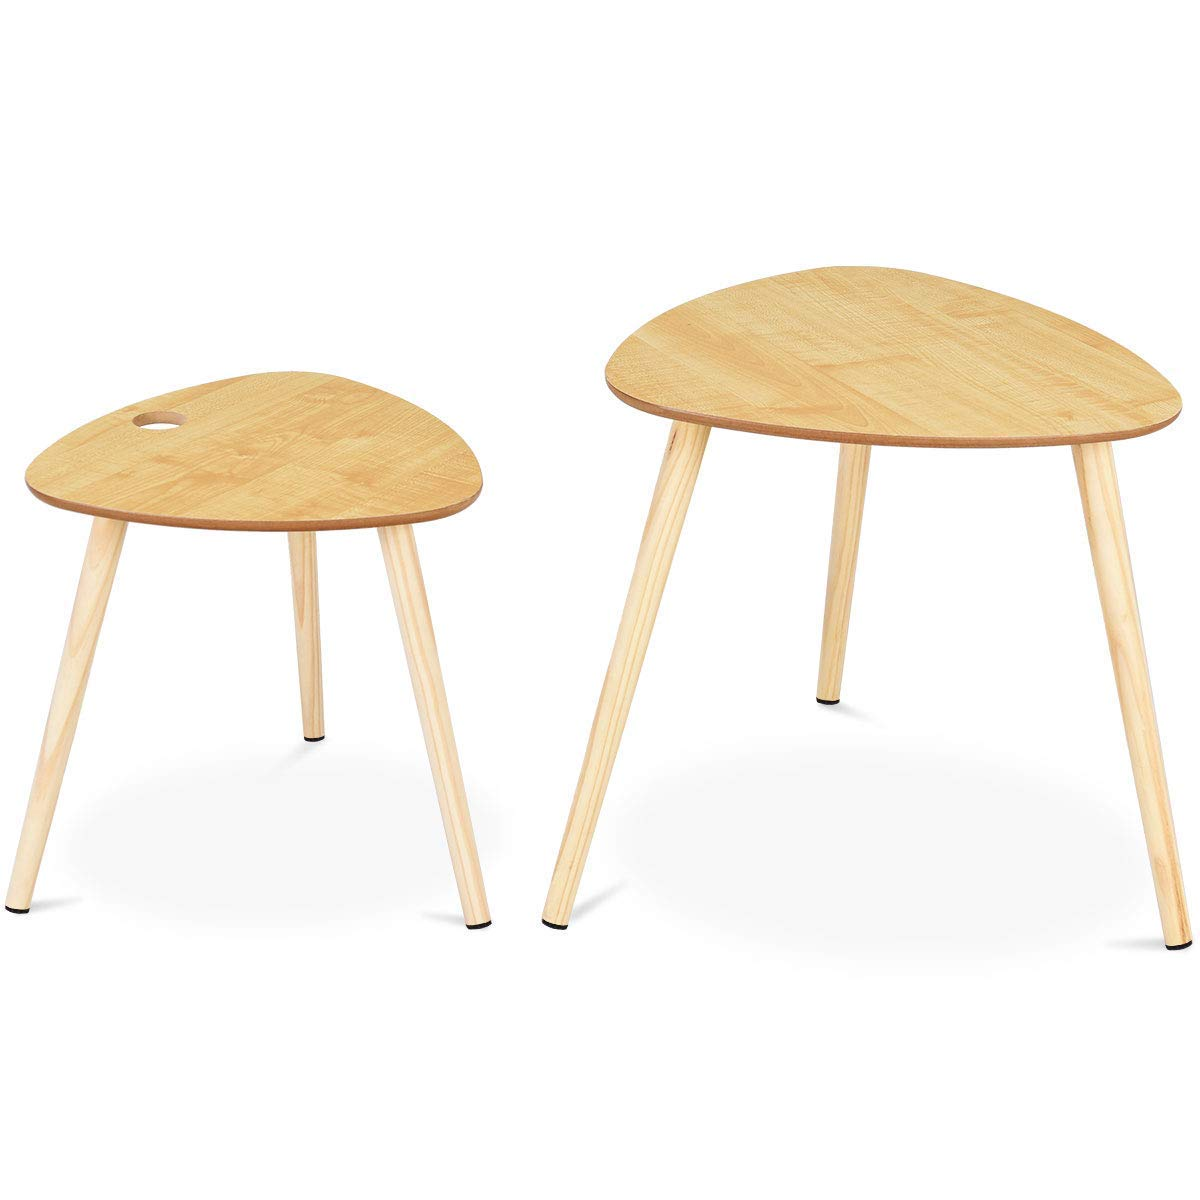 Giantex 2 Pcs Nesting Coffee Tables End Table Accent Sofa Side Table Home Living Room Office Modern Décor Coffee Table w/Wooden Leg by Giantex